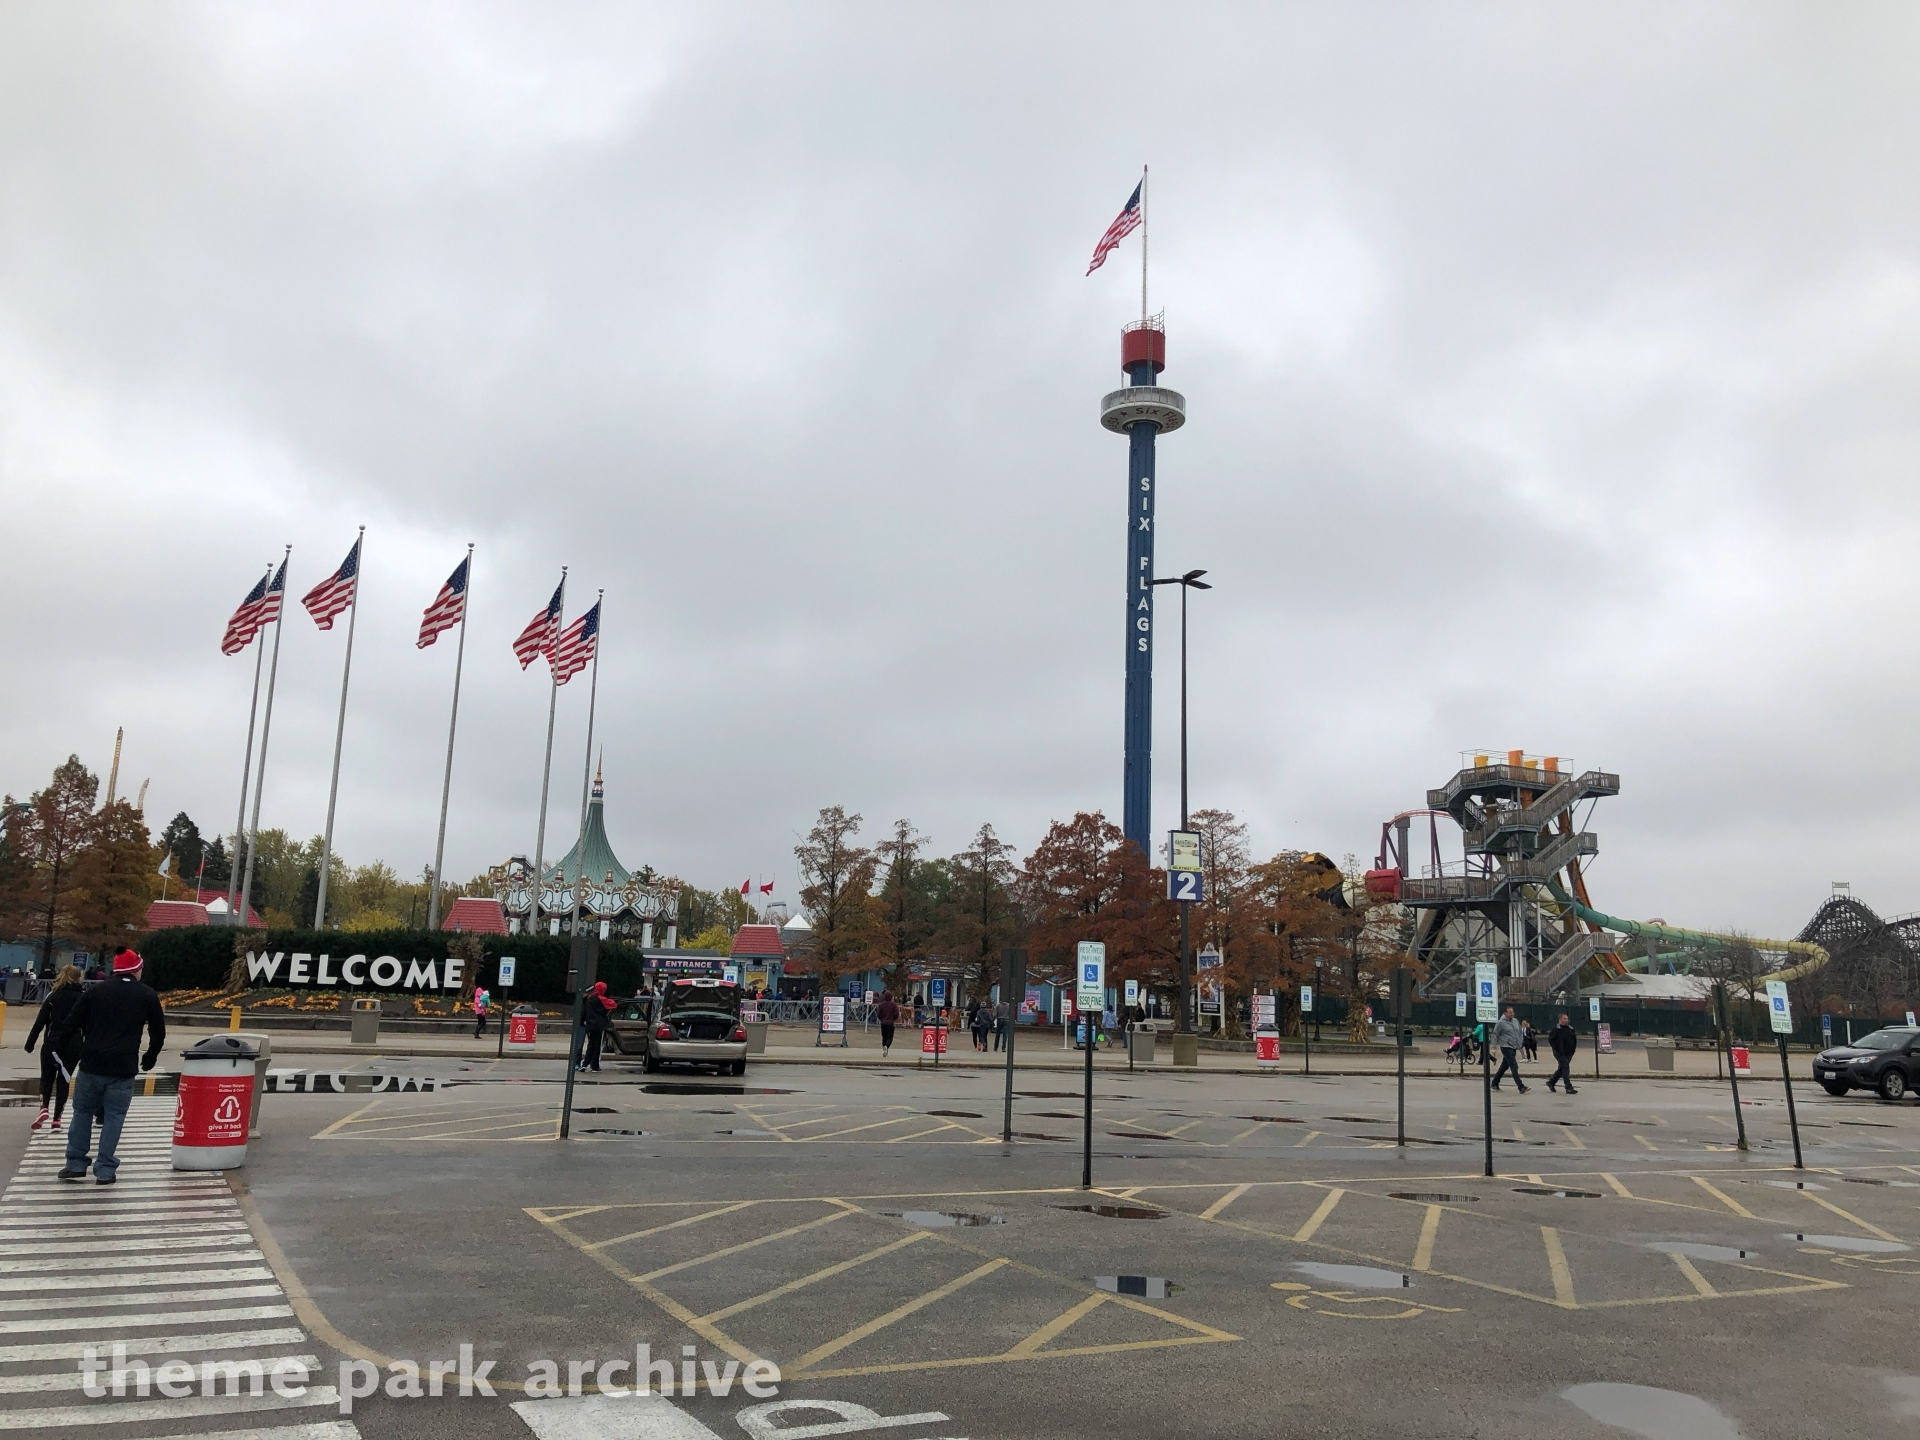 Sky Trek Tower at Six Flags Great America | Theme Park Archive